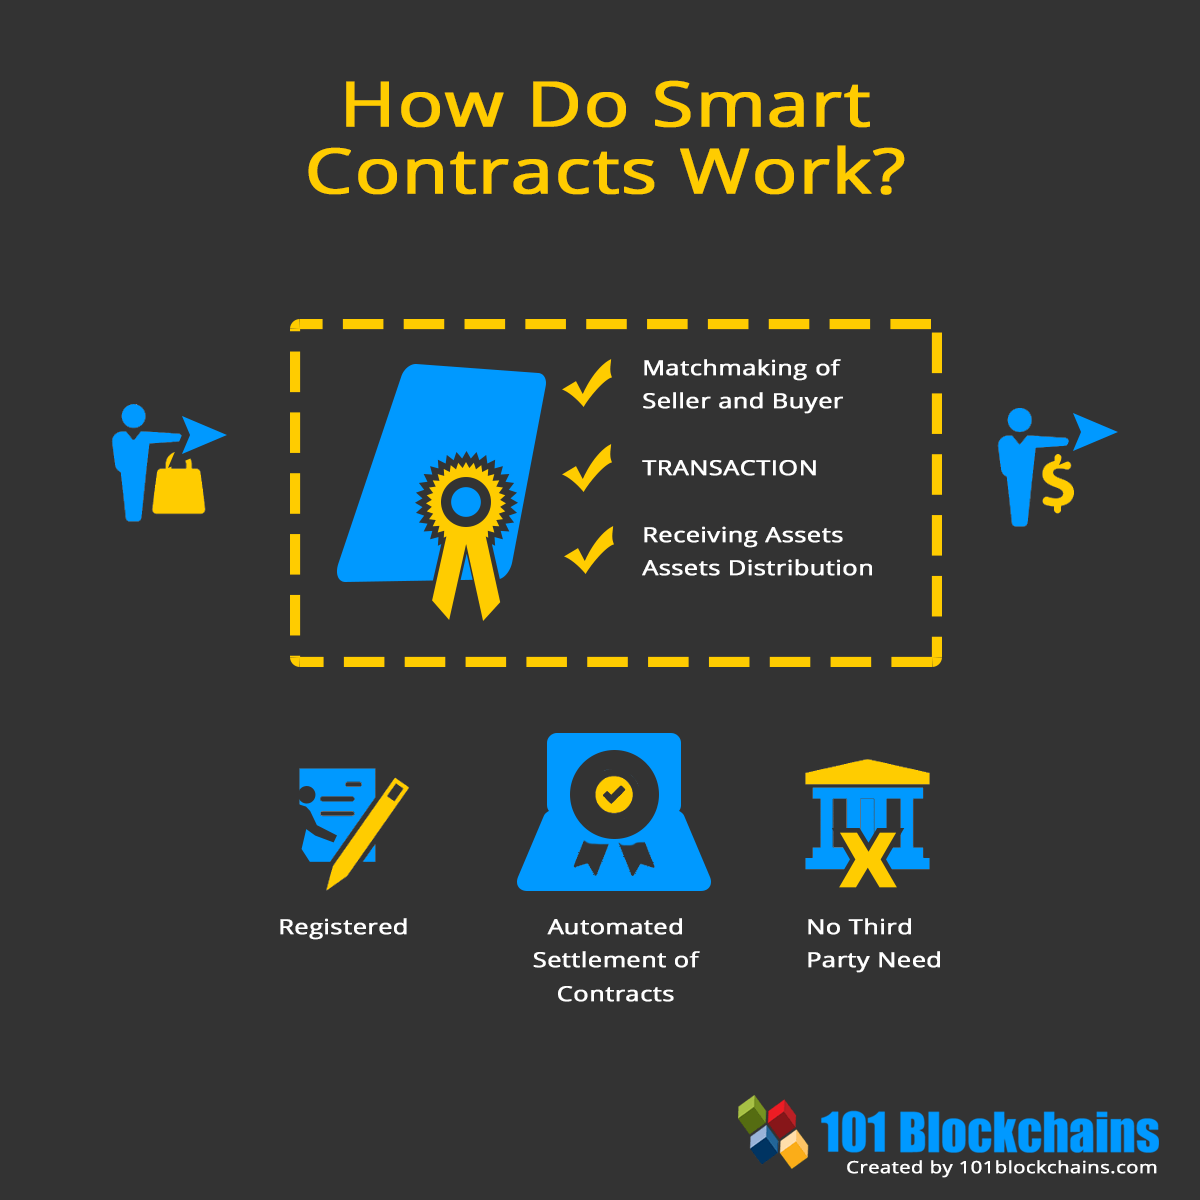 How Do Smart Contracts Work